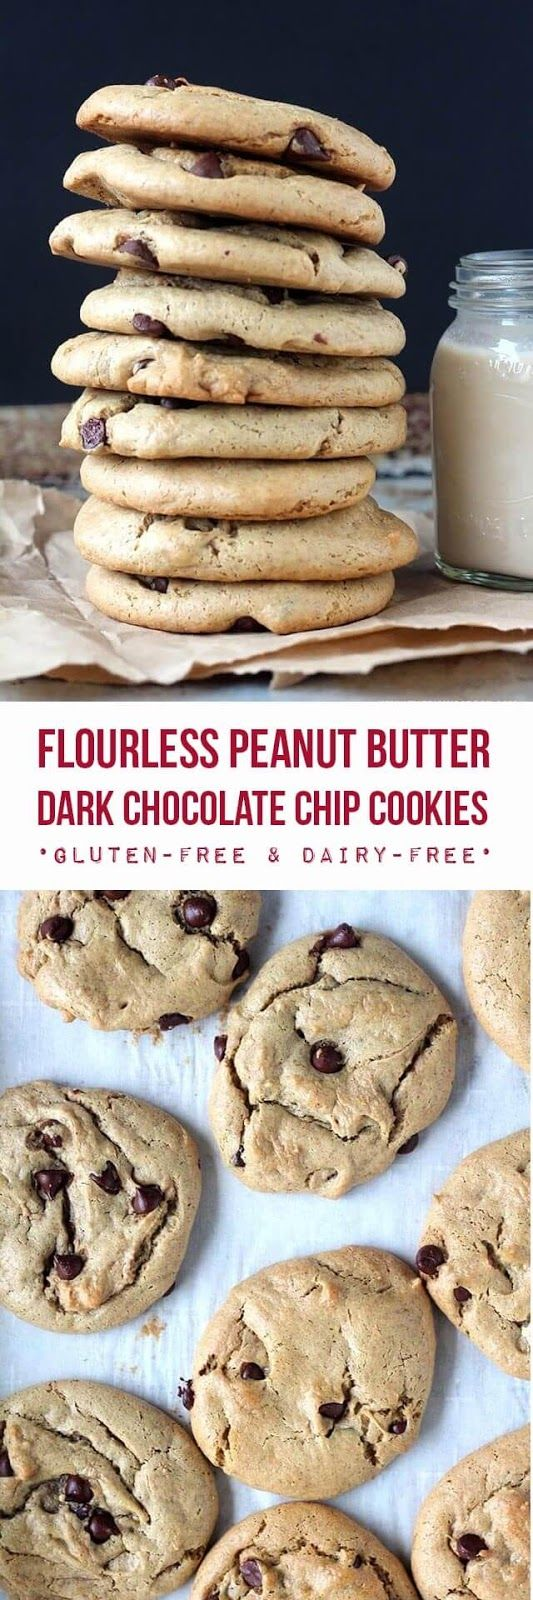 Easy flourless peanut butter cookies studded with dark chocolate chips and sweetened with maple syrup. These cookies are incredibly soft, full of rich peanut butter flavor, and they develop a wonderful chewiness the day after baking them. {gluten-free & dairy-free},